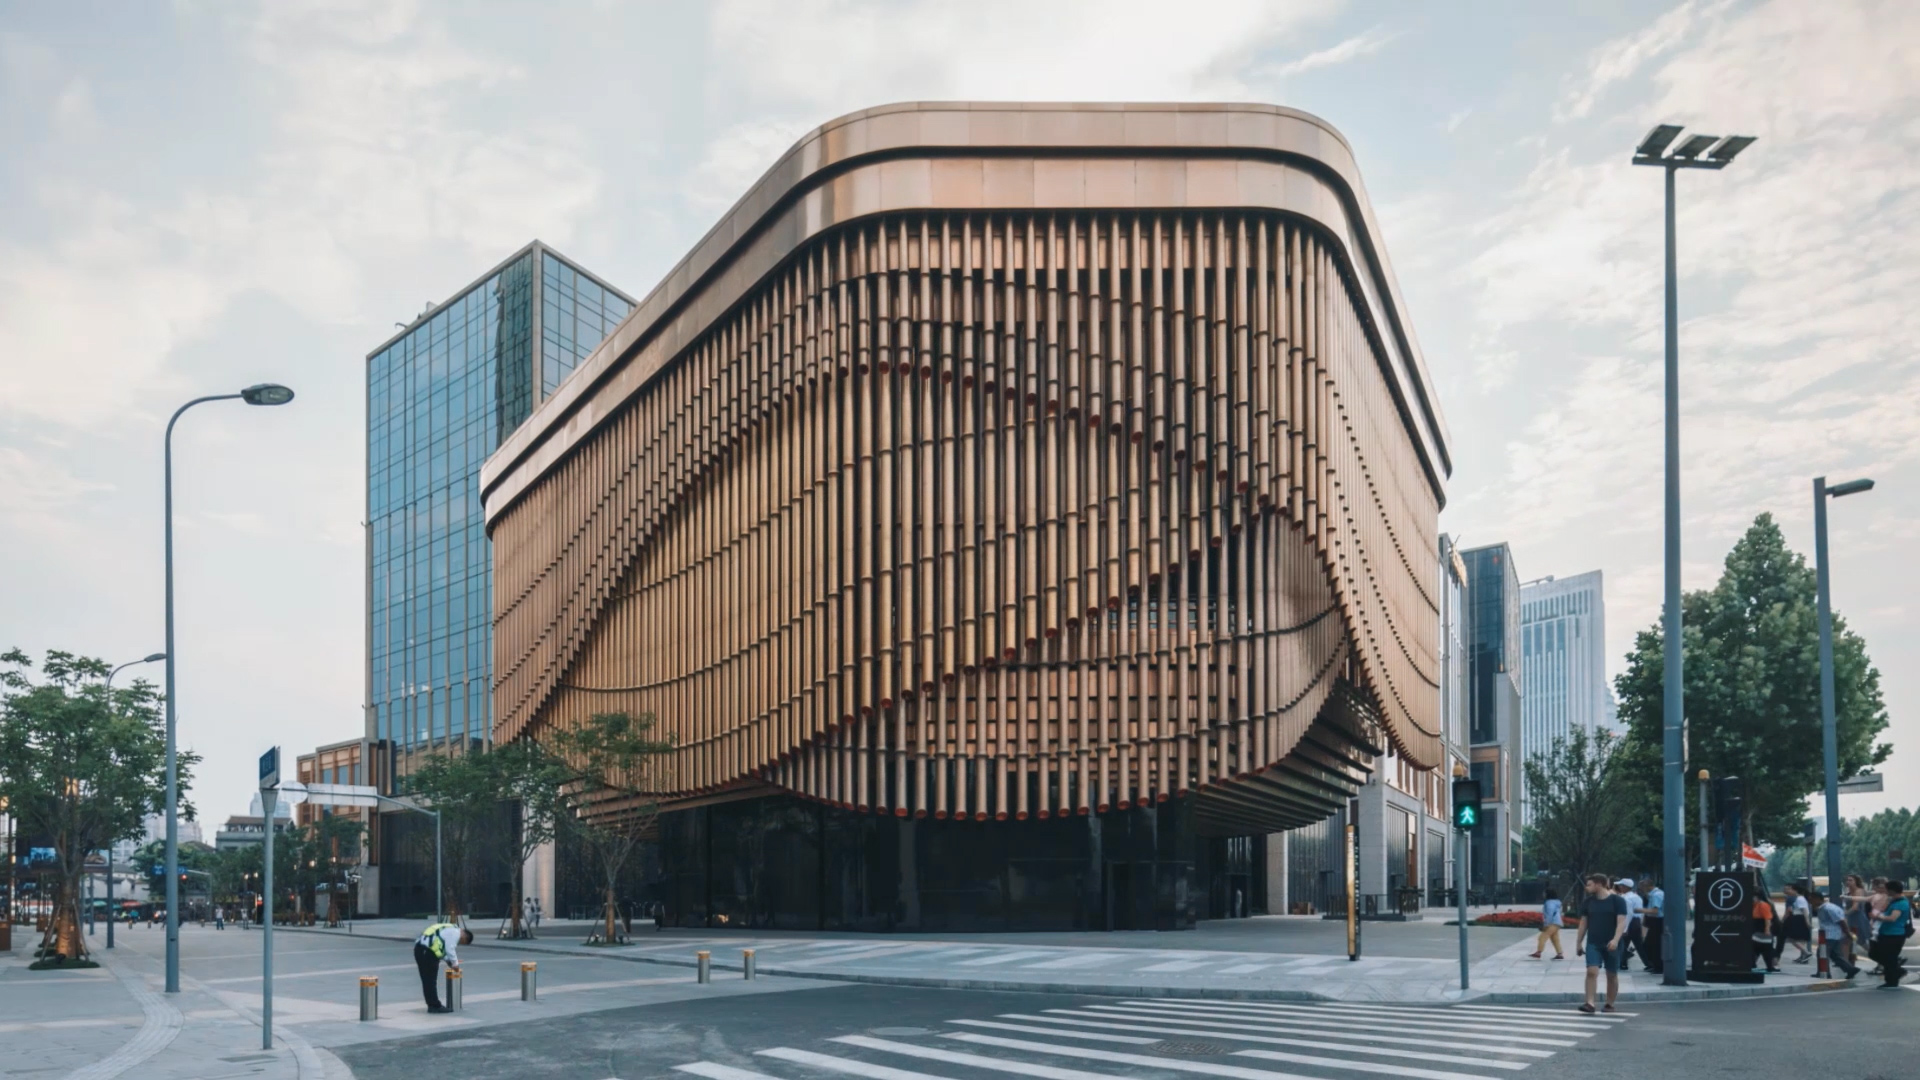 Heatherwick Studio's Architectural Projects